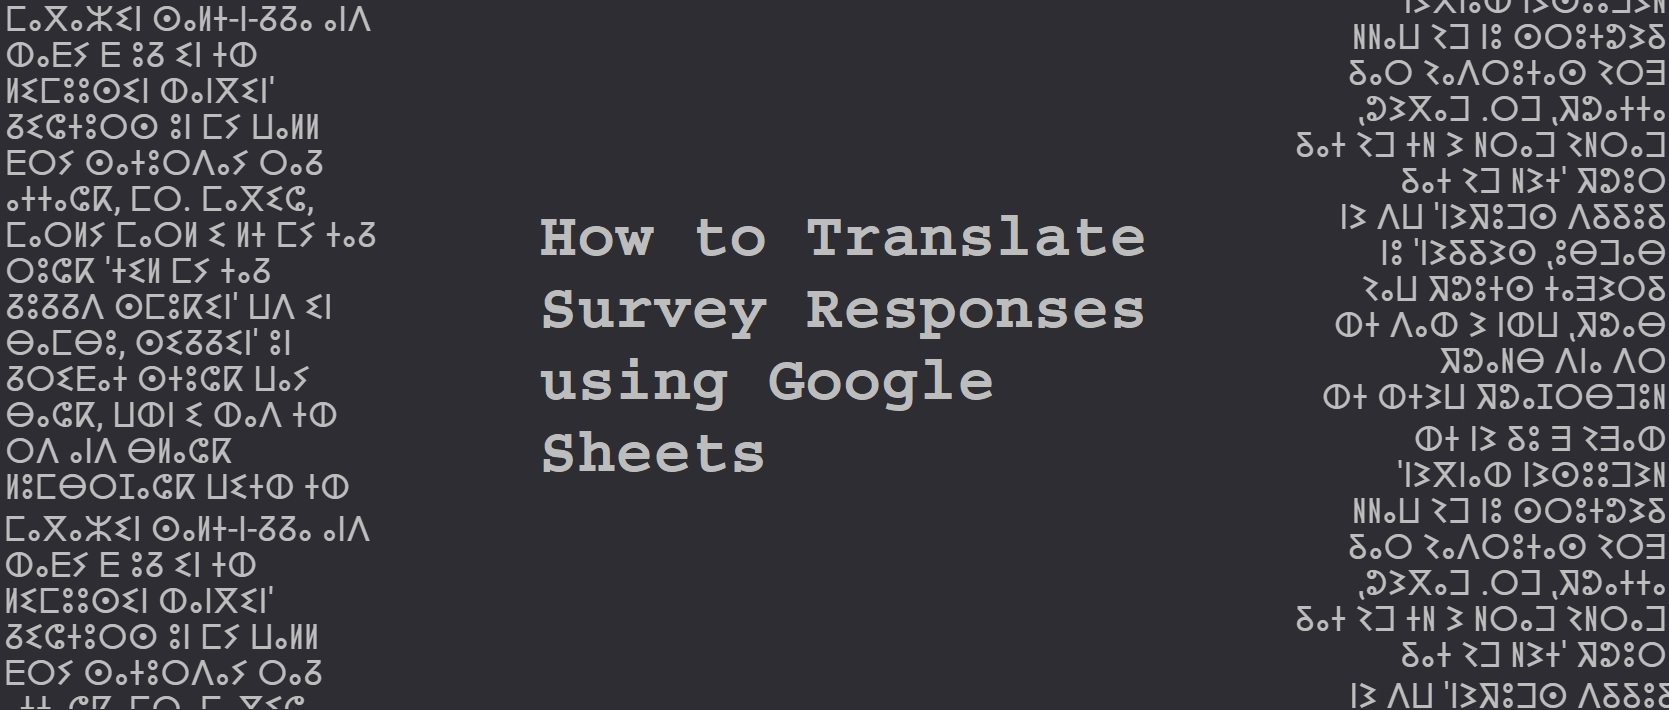 How to Translate Survey Responses using Google Sheets